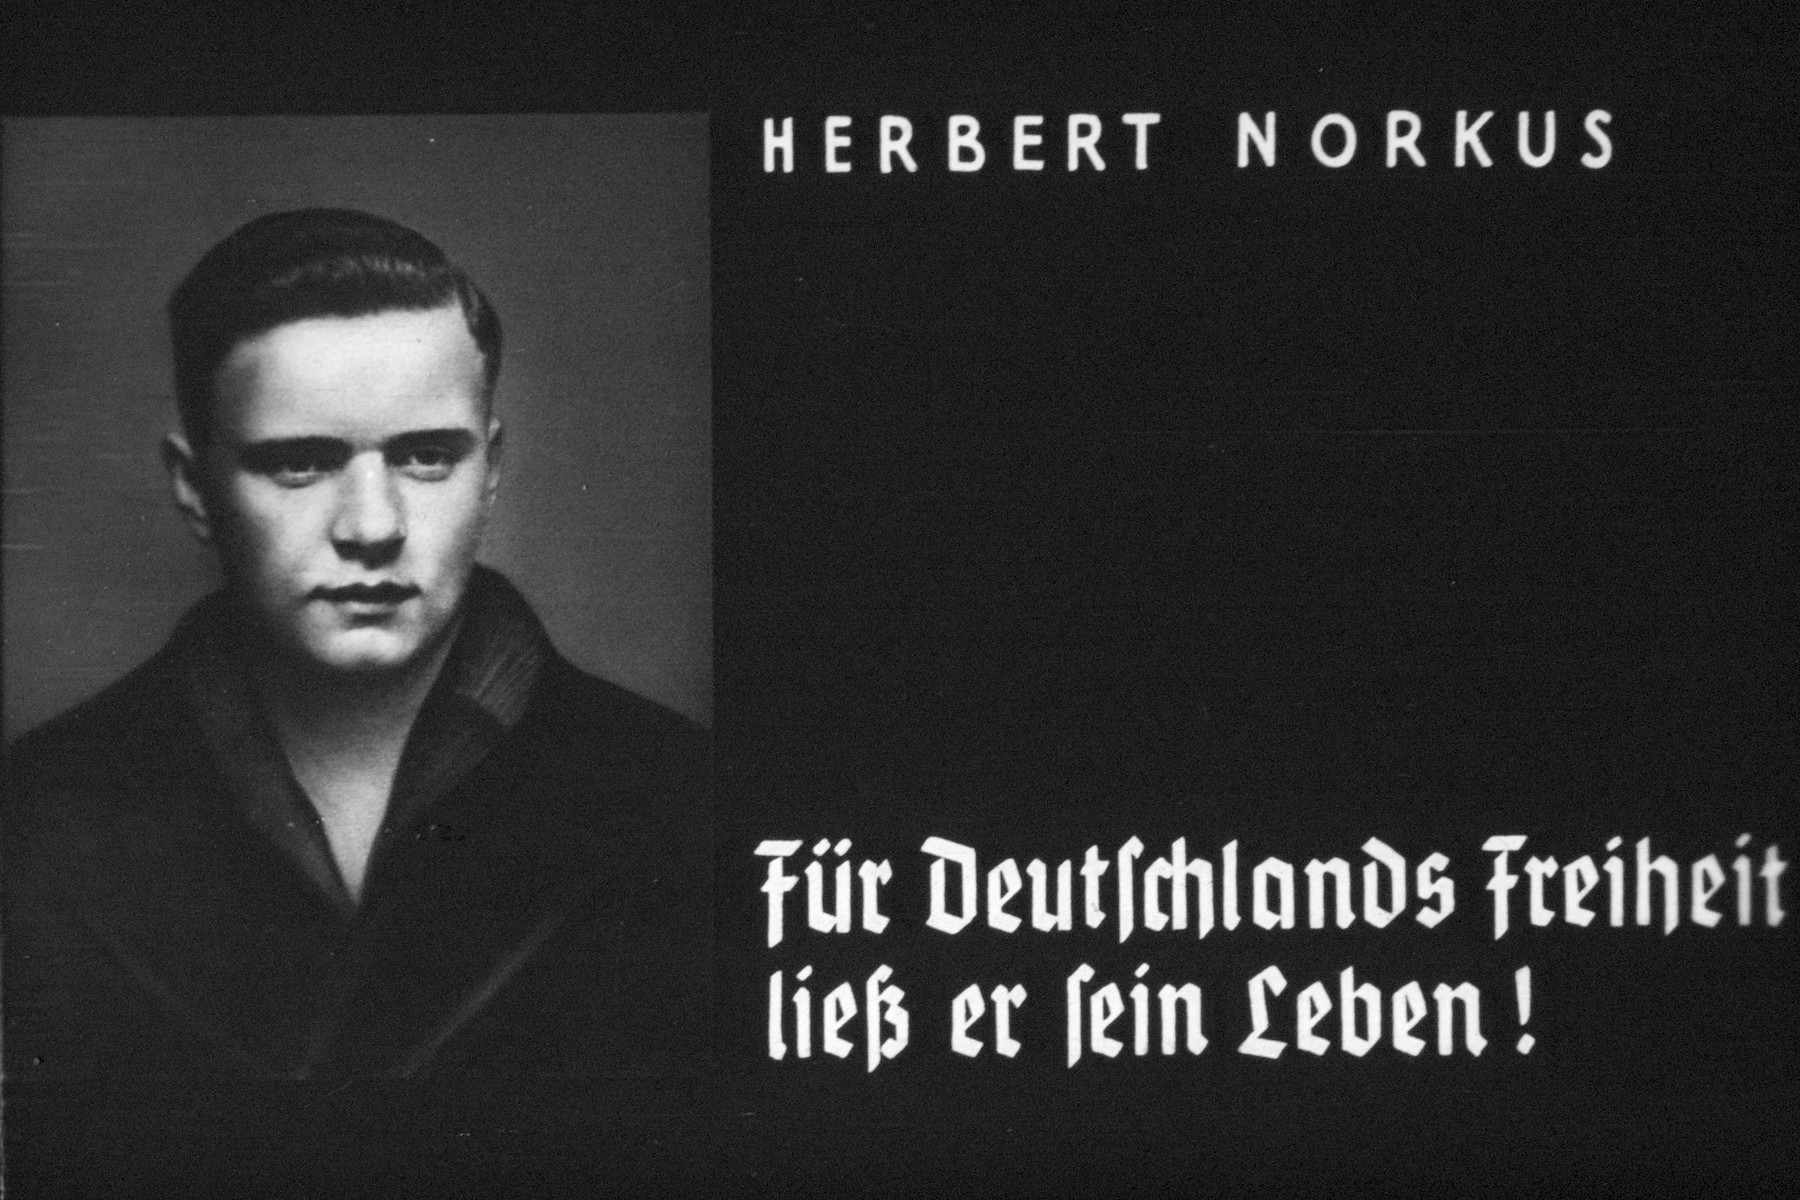 11th slide from a Hitler Youth slideshow about the aftermath of WWI, Versailles, how it was overcome and the rise of Nazism.  Herbert Norkus: Für Deutschlands Freiheit liess er sein Leben! // Herbert Norkus:For Germany's freedom he lost his life!